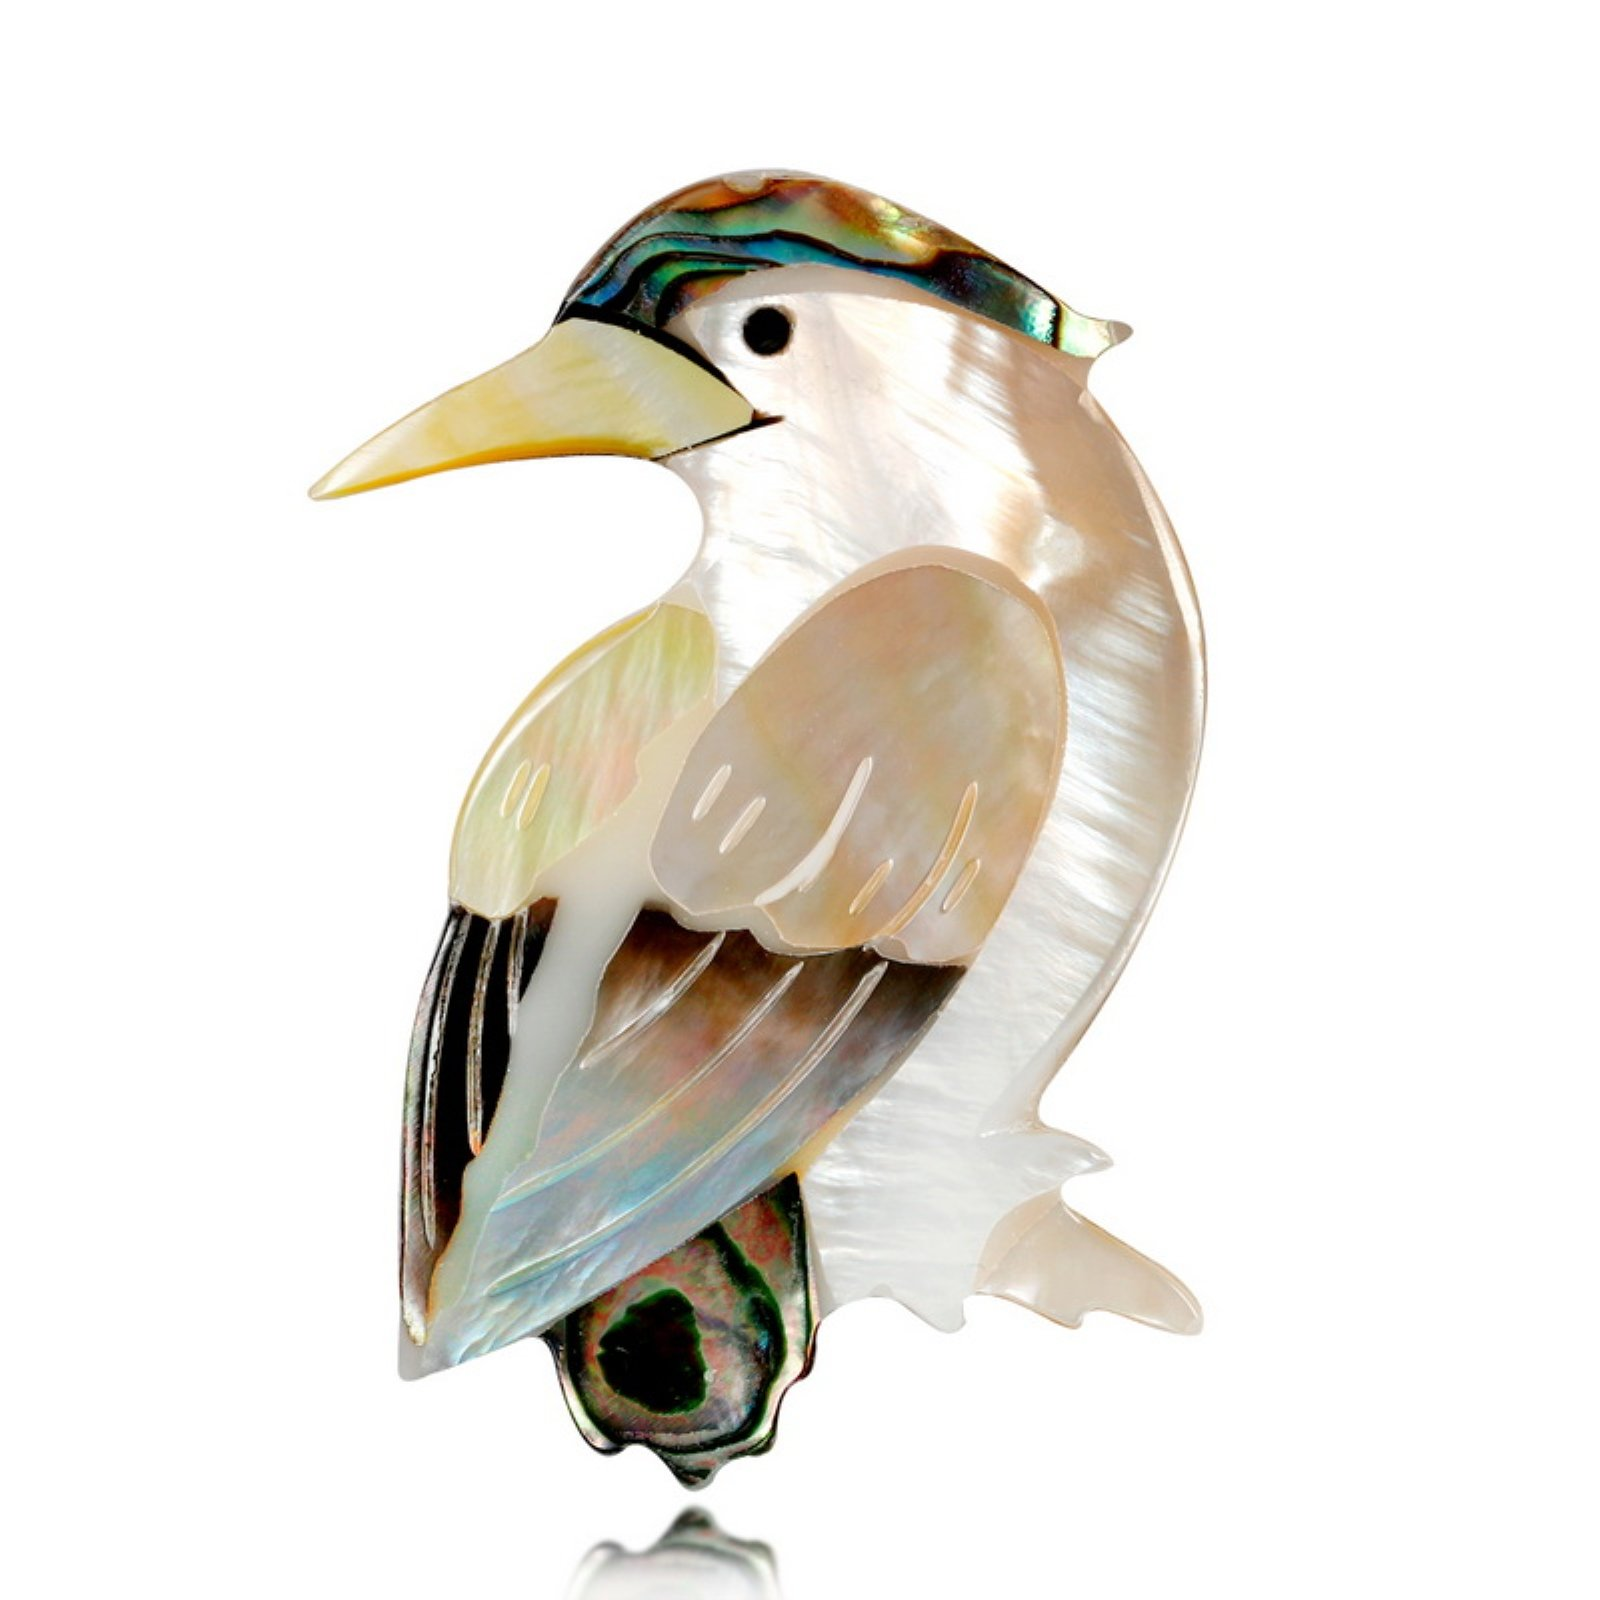 ptk12 Vintage Animal Bijouterie Brooch Pins Badges Jewelry Shell Brooch Bird For Scarf Small by ptk12